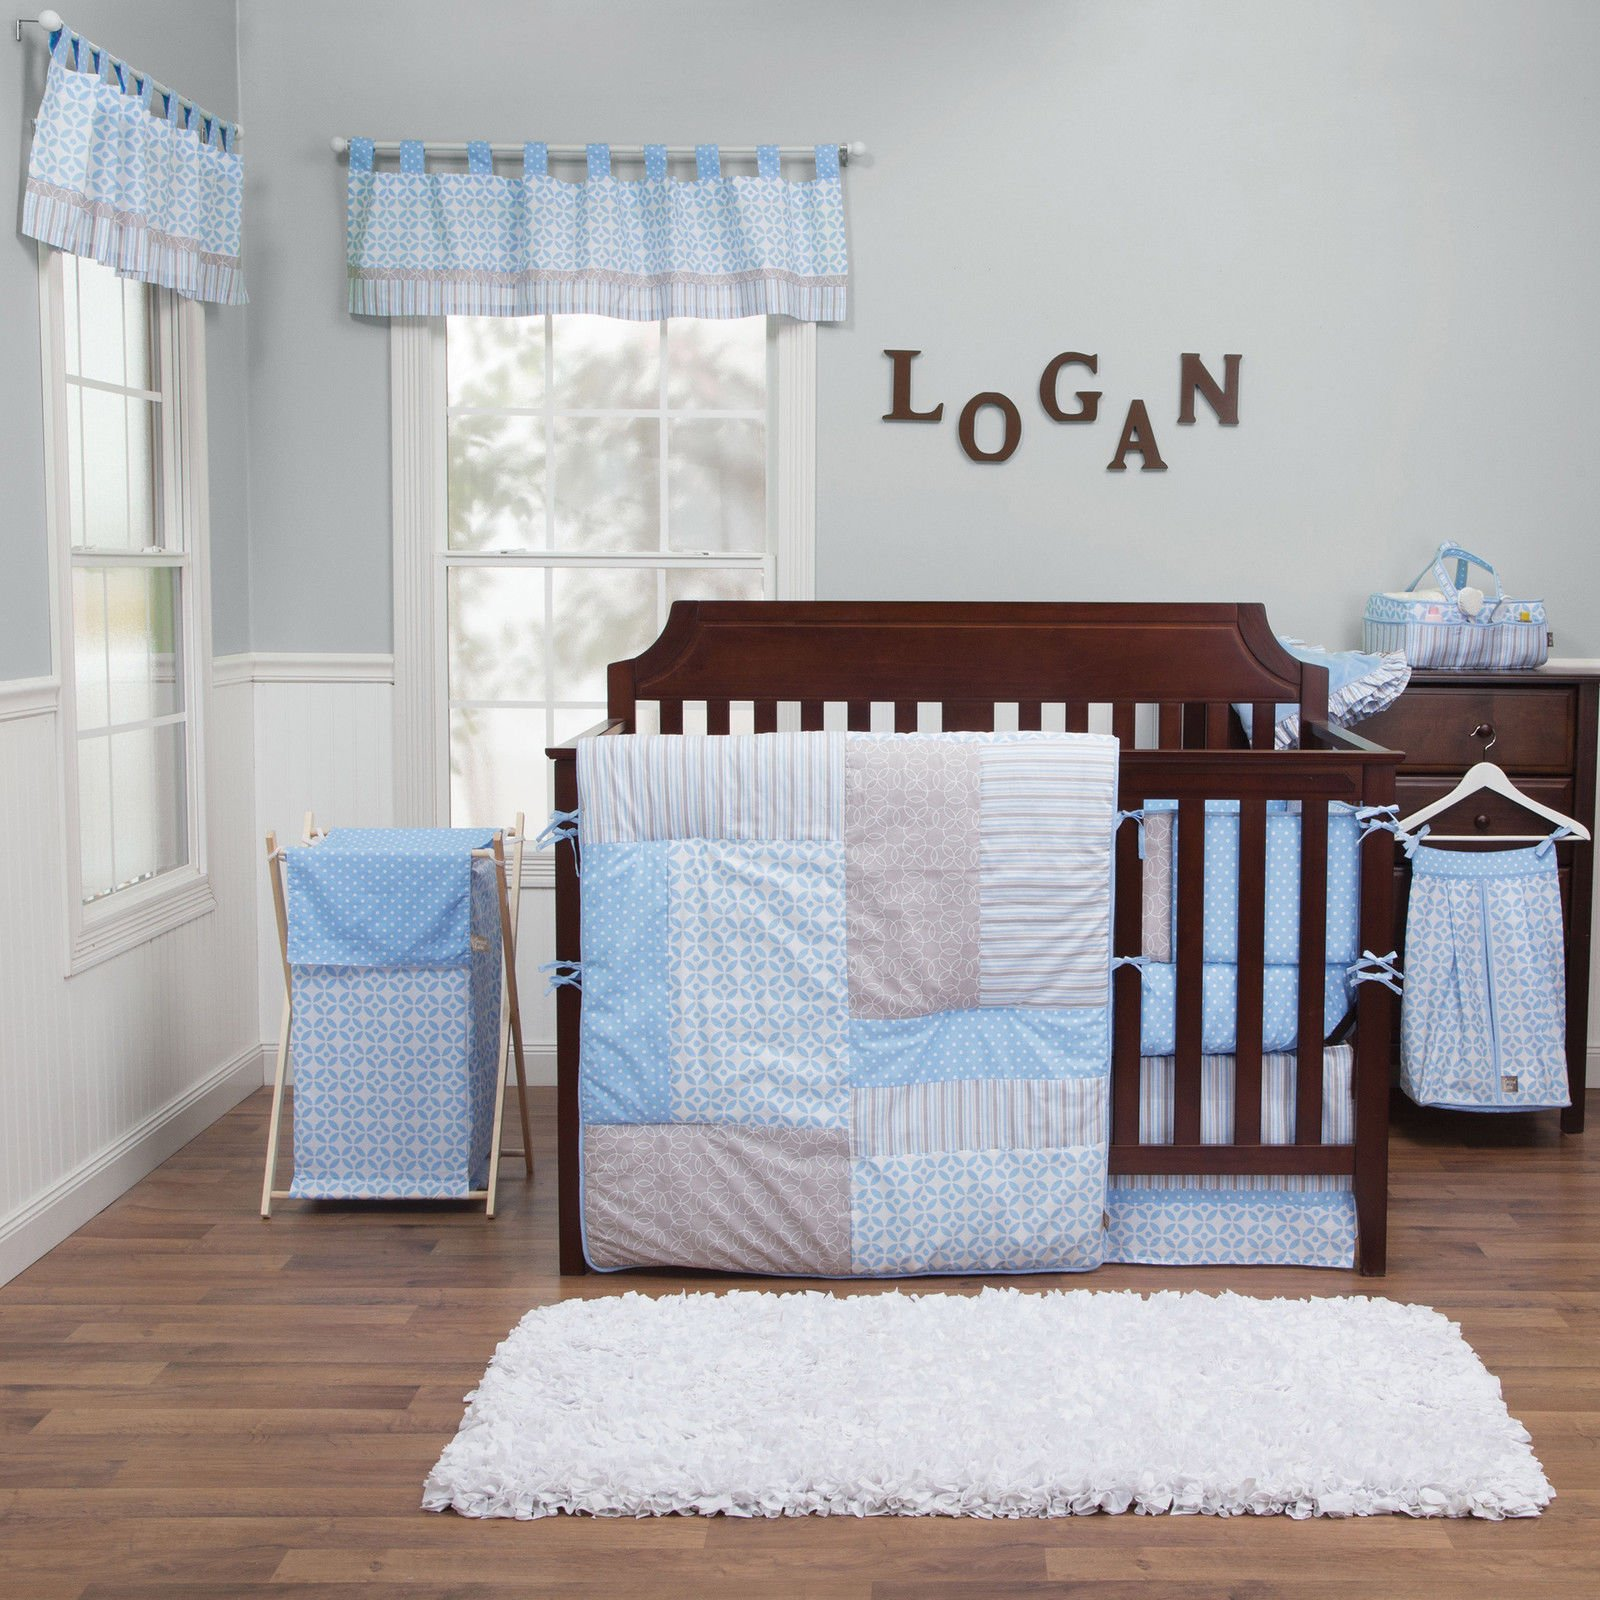 This Unique Baby bedding 5 piece Crib bedding set is great for your new Nursery bedding. The stripes and dots of this set is sure to match any Baby cribs or Baby furniture or Diaper bags by Everyday Manufacturing Company